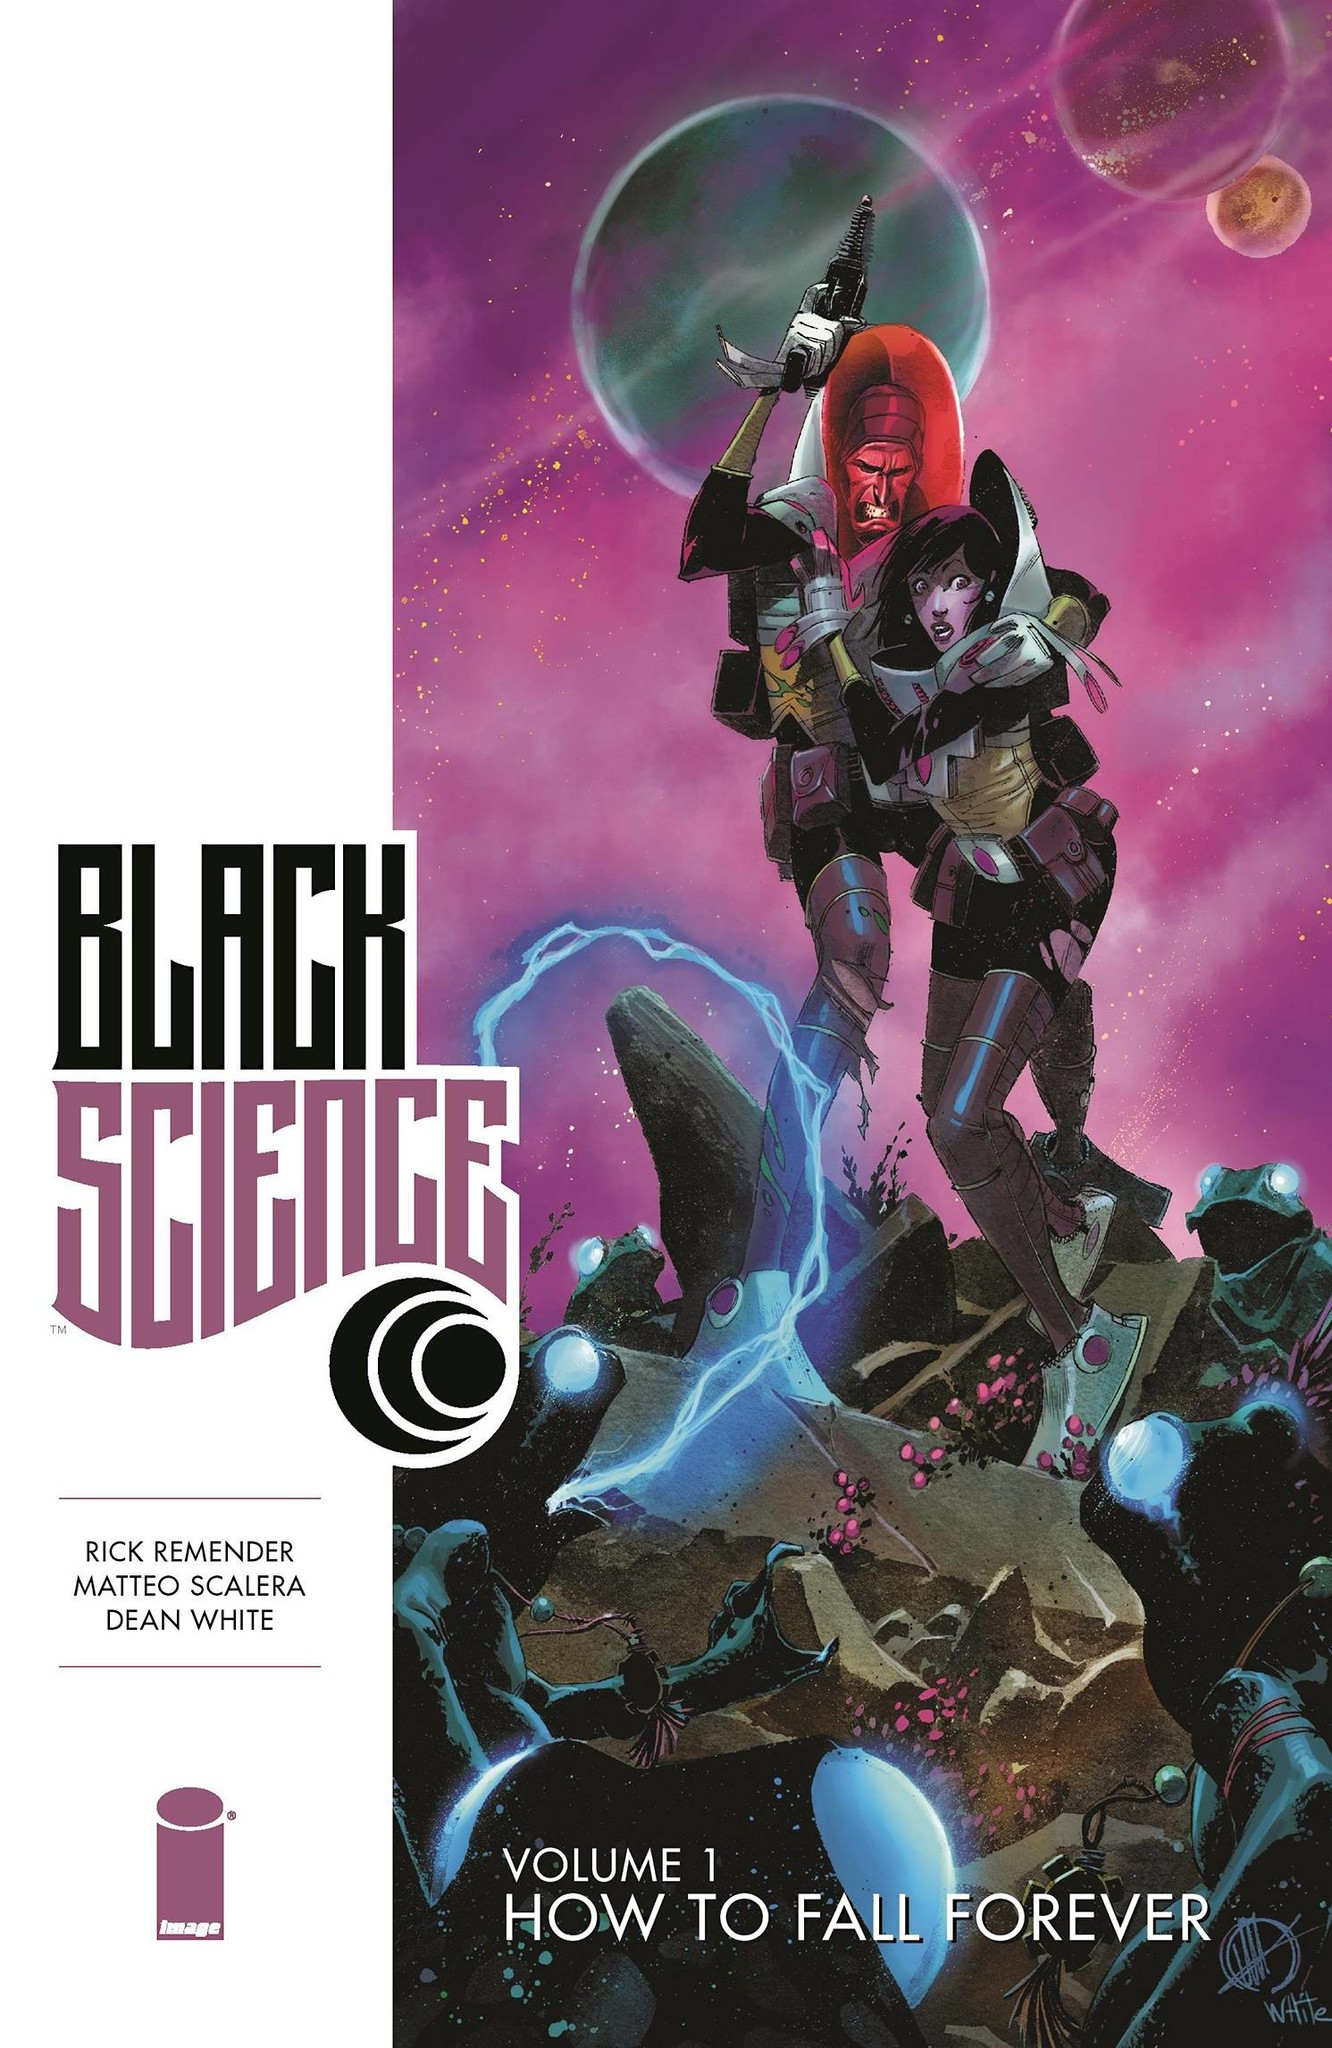 Black Science Vol 1 TP: How to Fall Forever